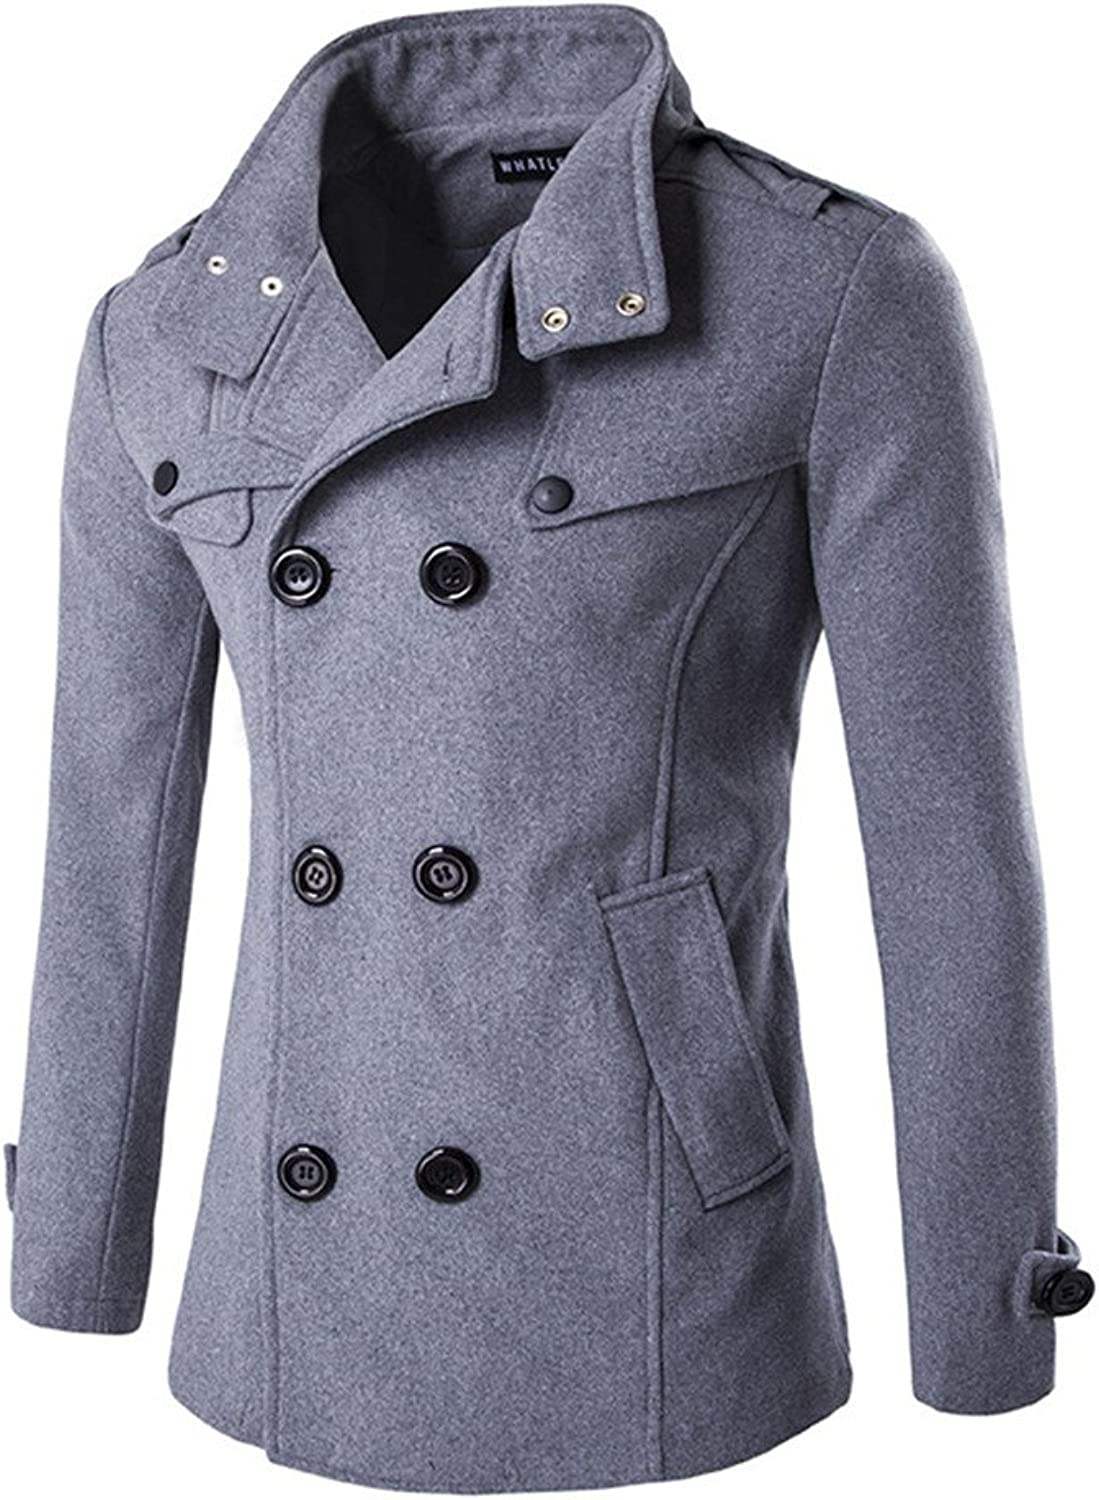 Retrograder Men's Stand Collar Trench Winter Jacket Double Breasted Overcoat